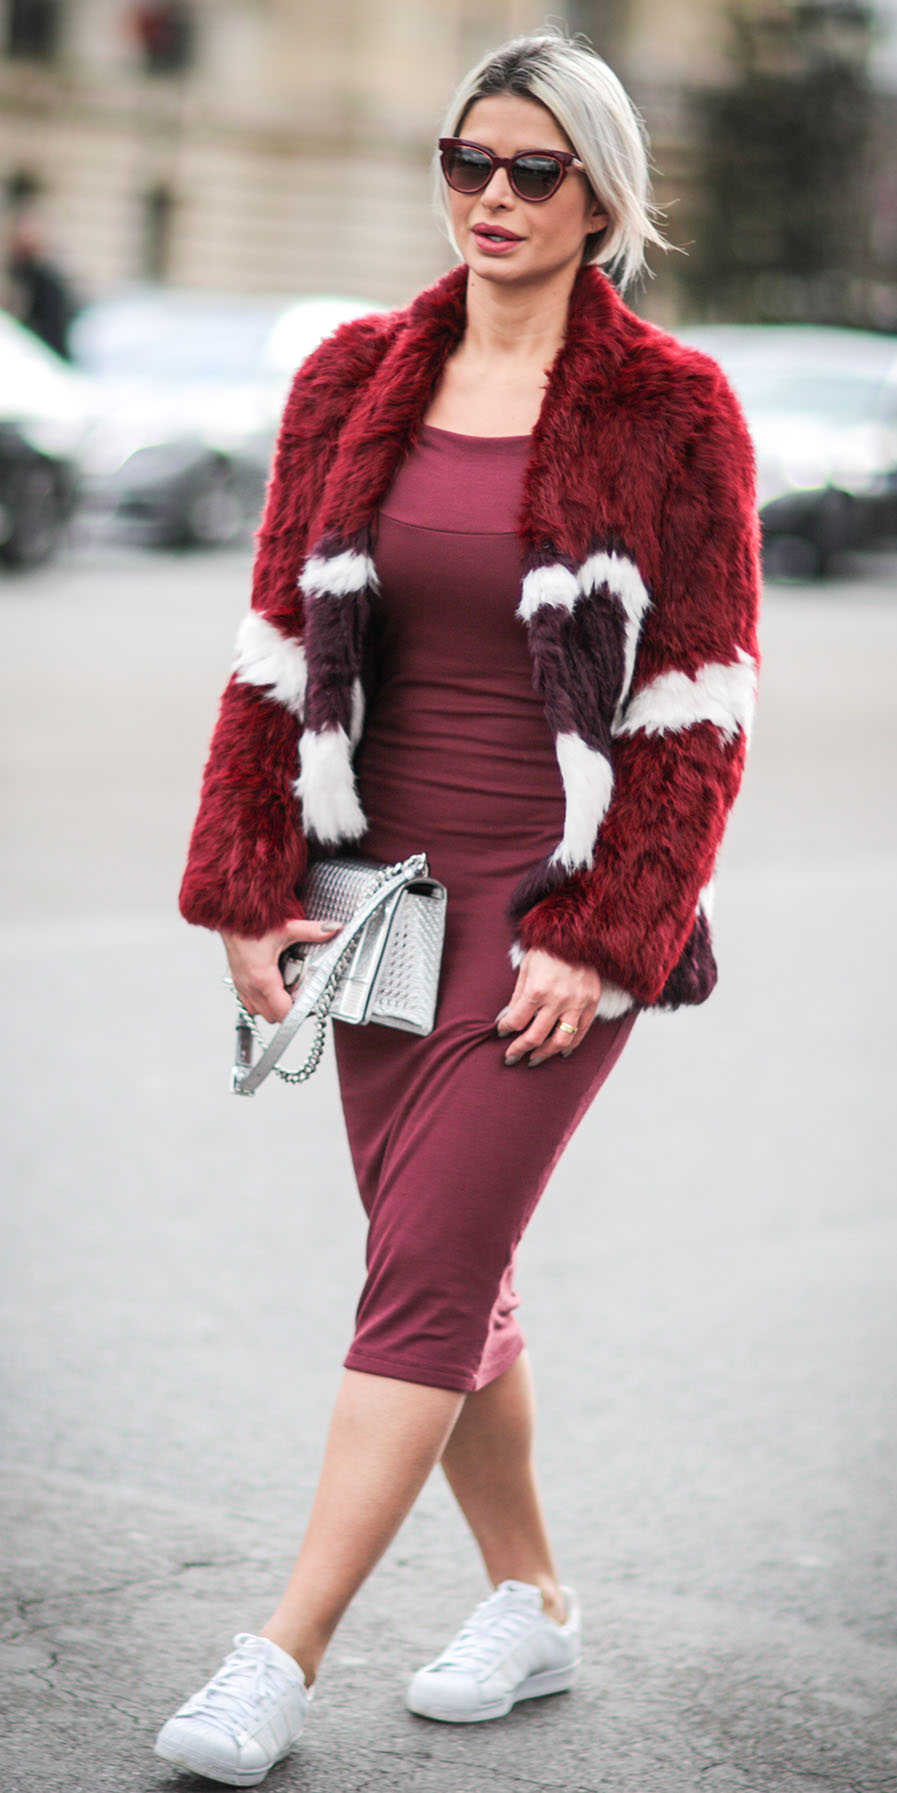 red-dress-bodycon-gray-bag-white-shoe-sneakers-blonde-sun-red-jacket-coat-fur-fall-winter-weekend.jpg